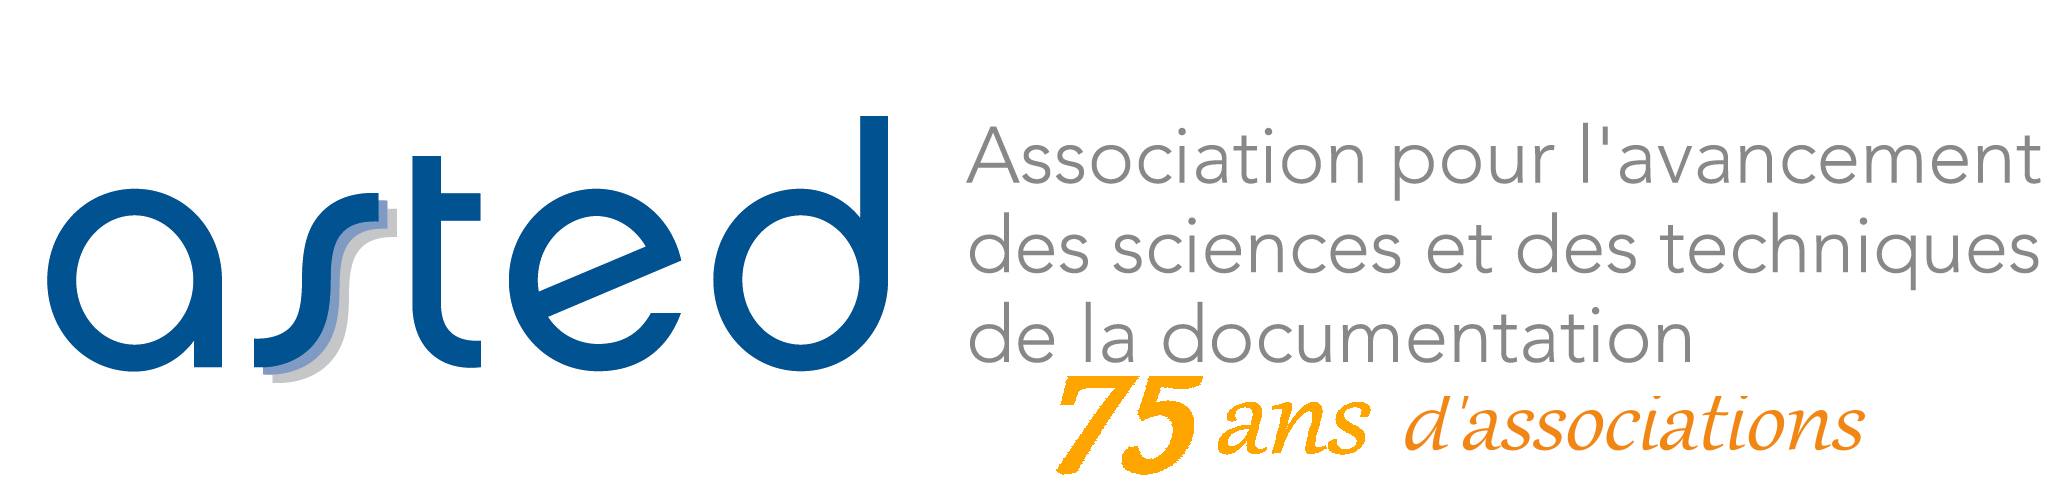 ASTED 75 ans d'associations